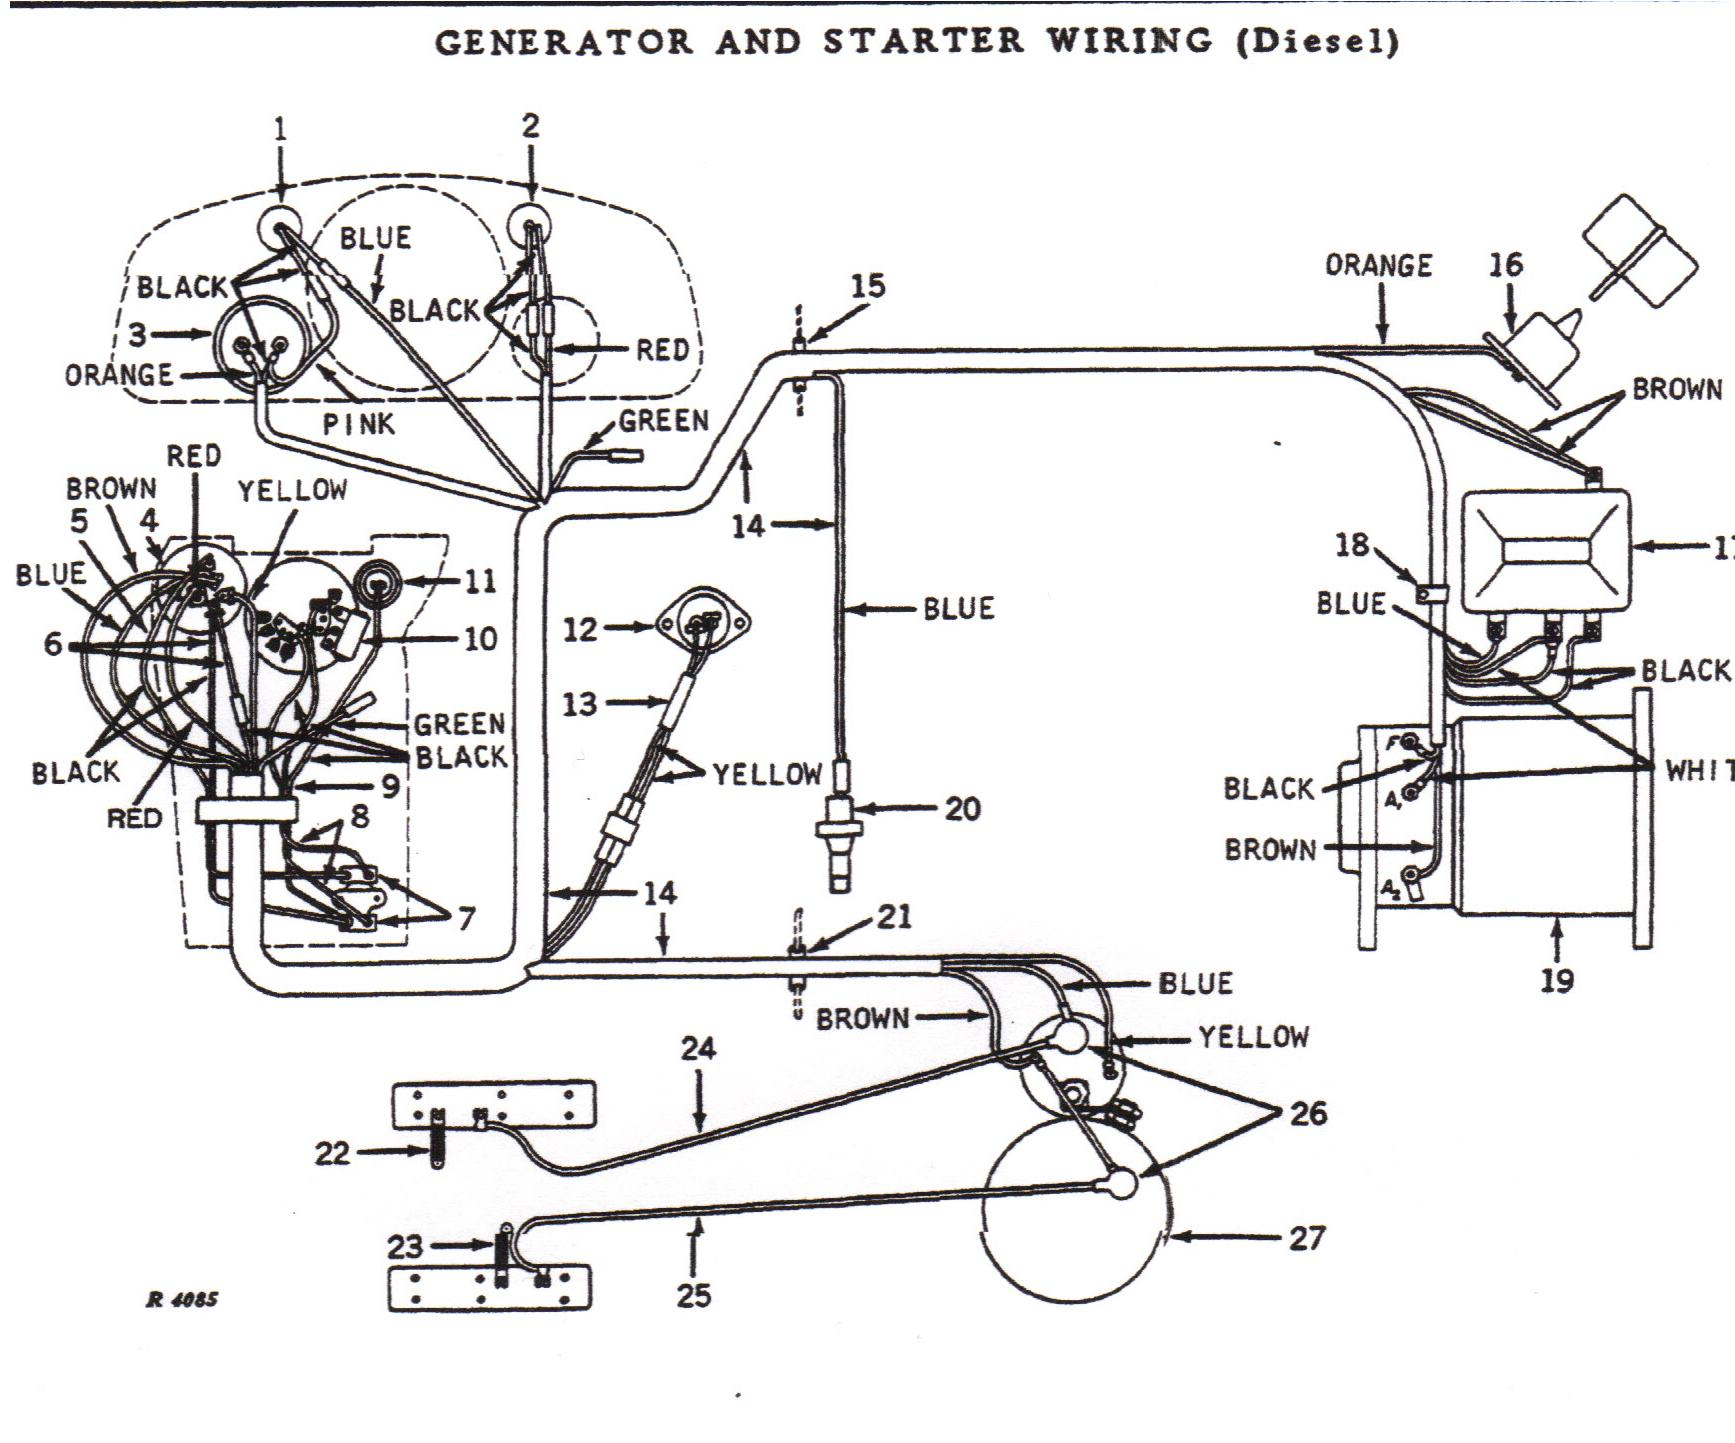 John Deere 770 Ignition Wiring Diagram